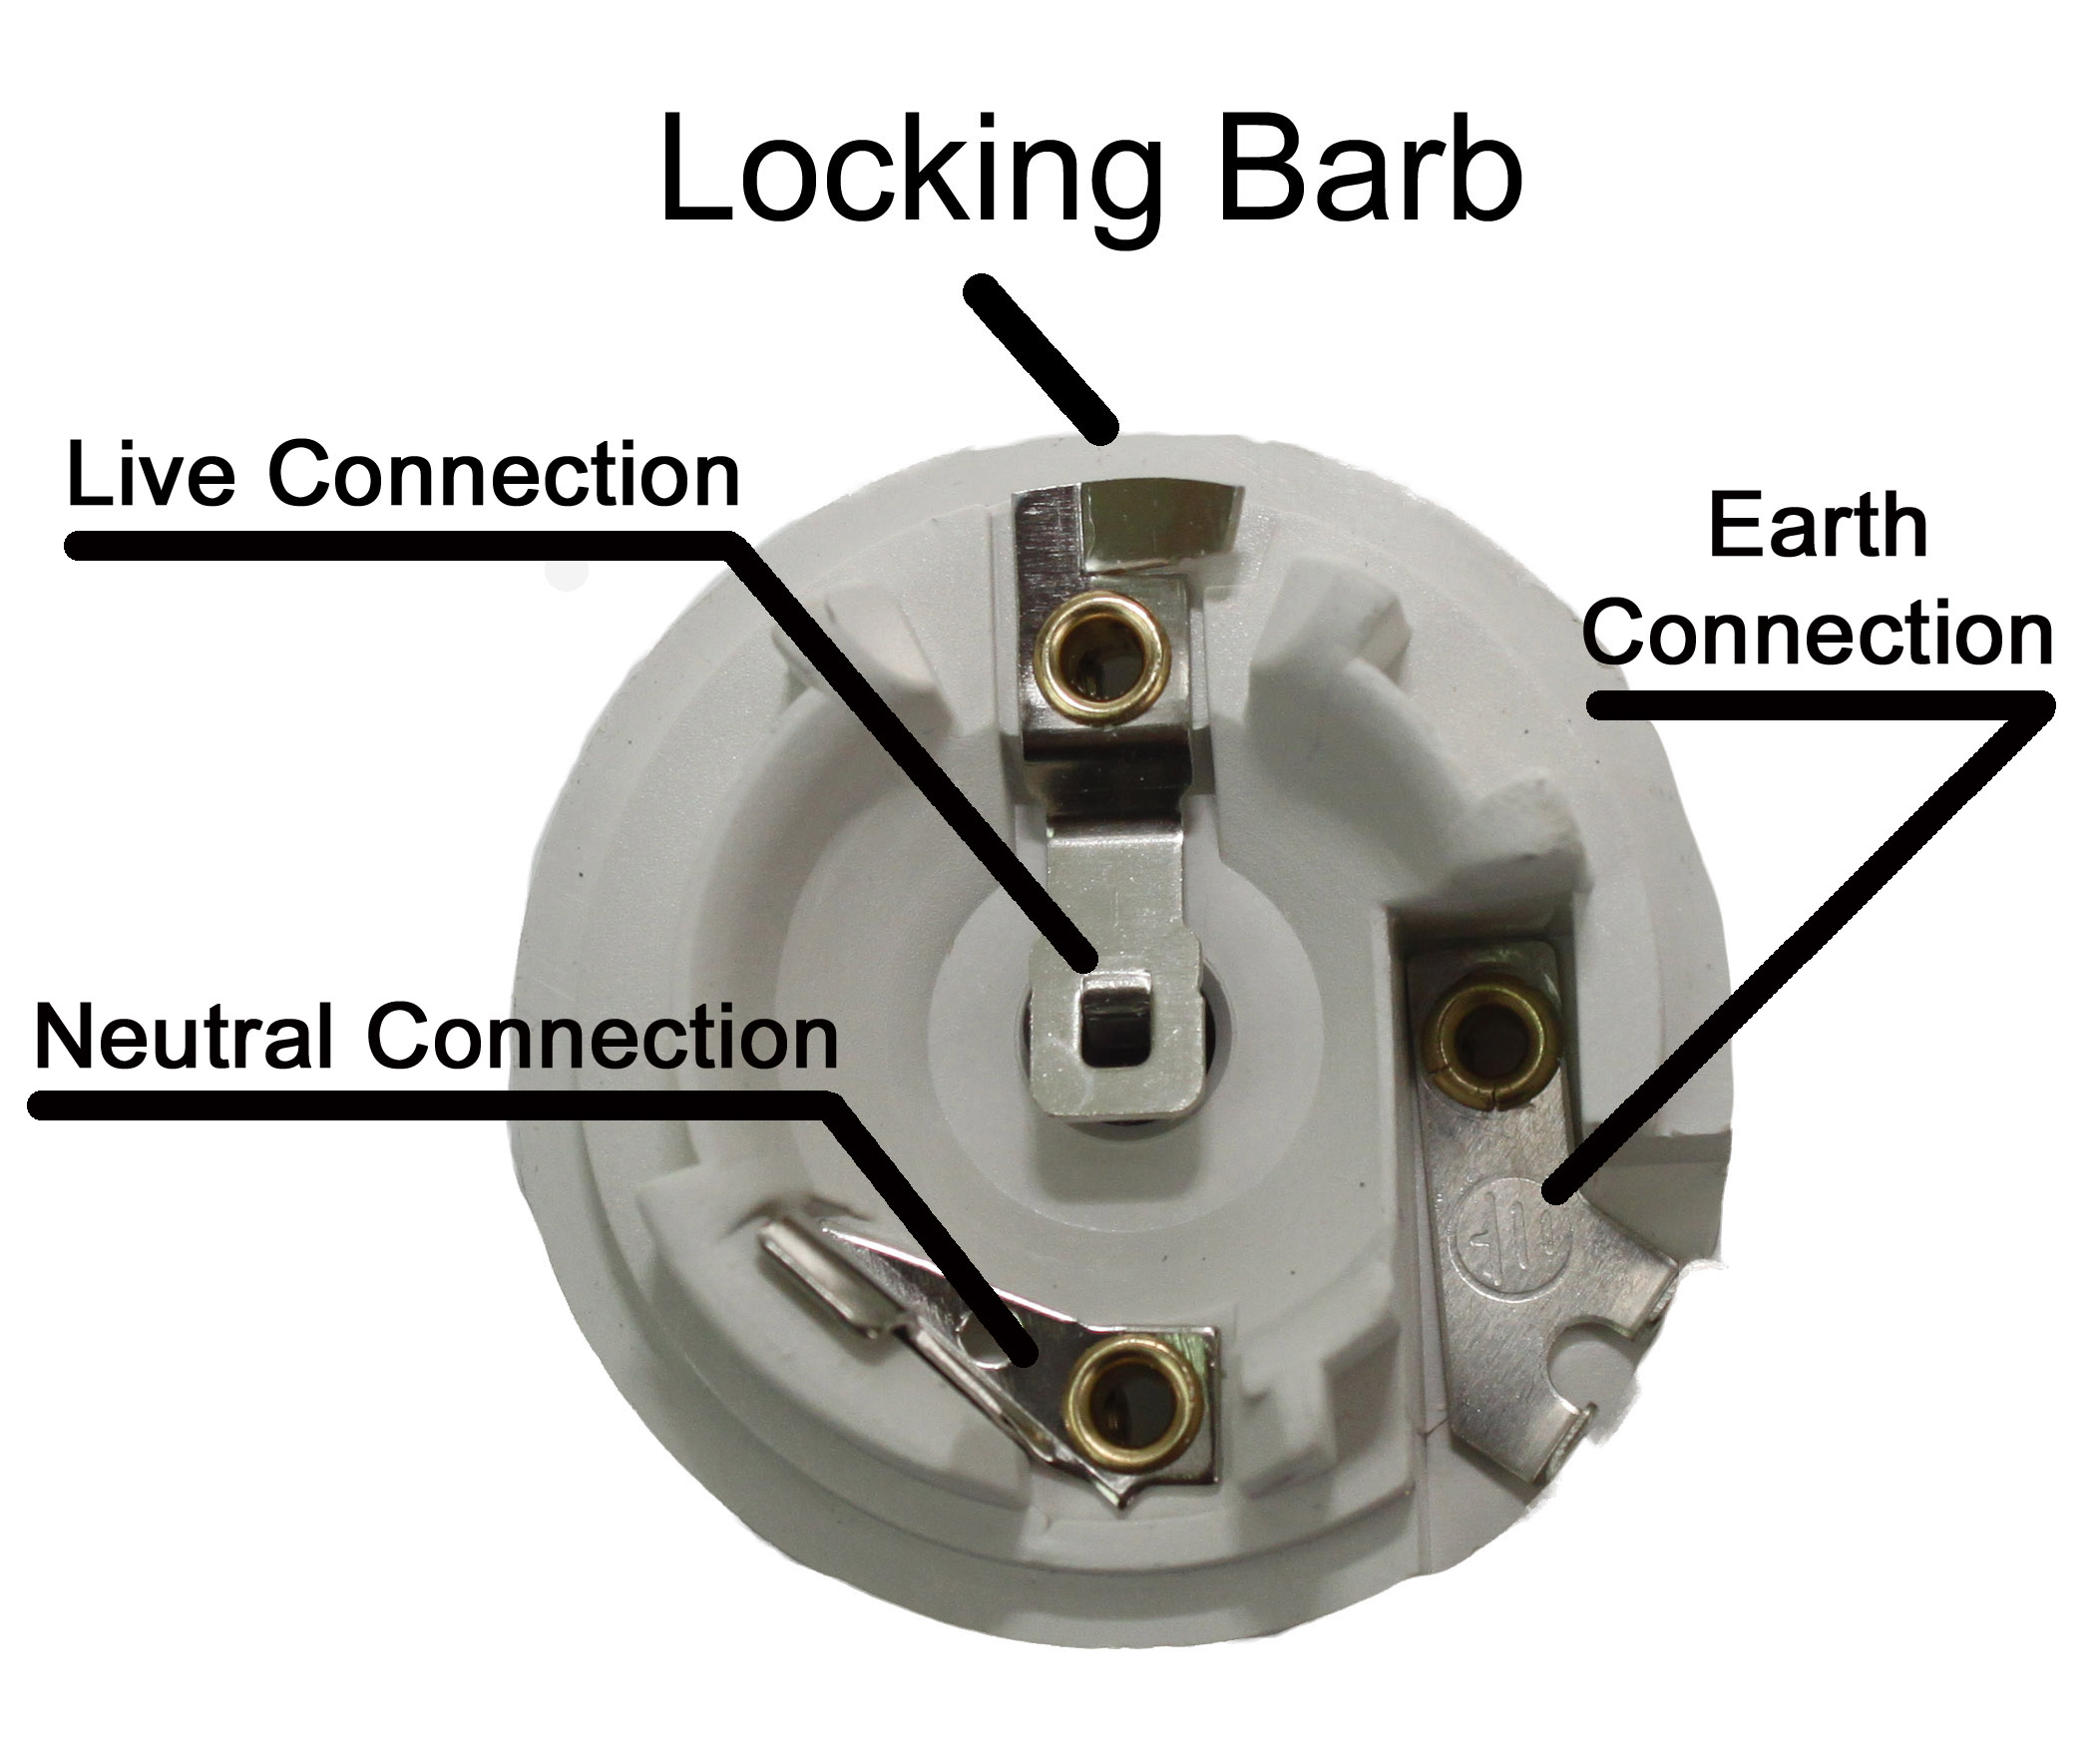 Wiring of a es or e screw lampholder